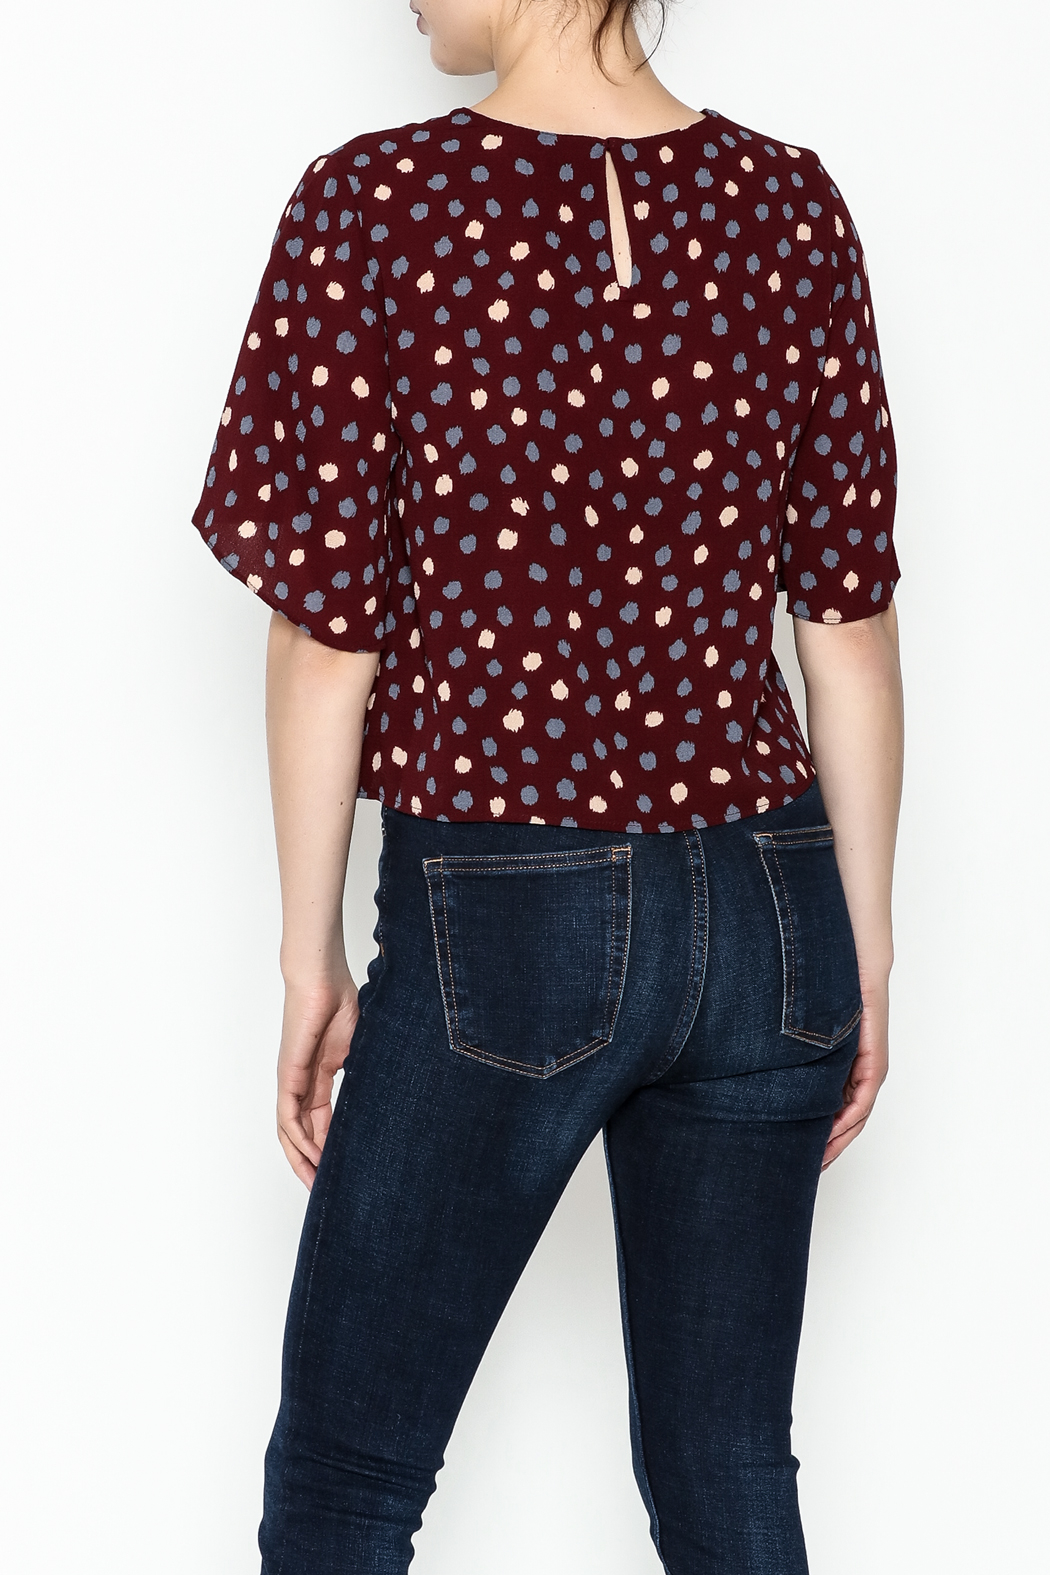 Alythea Polka Dot Top - Back Cropped Image